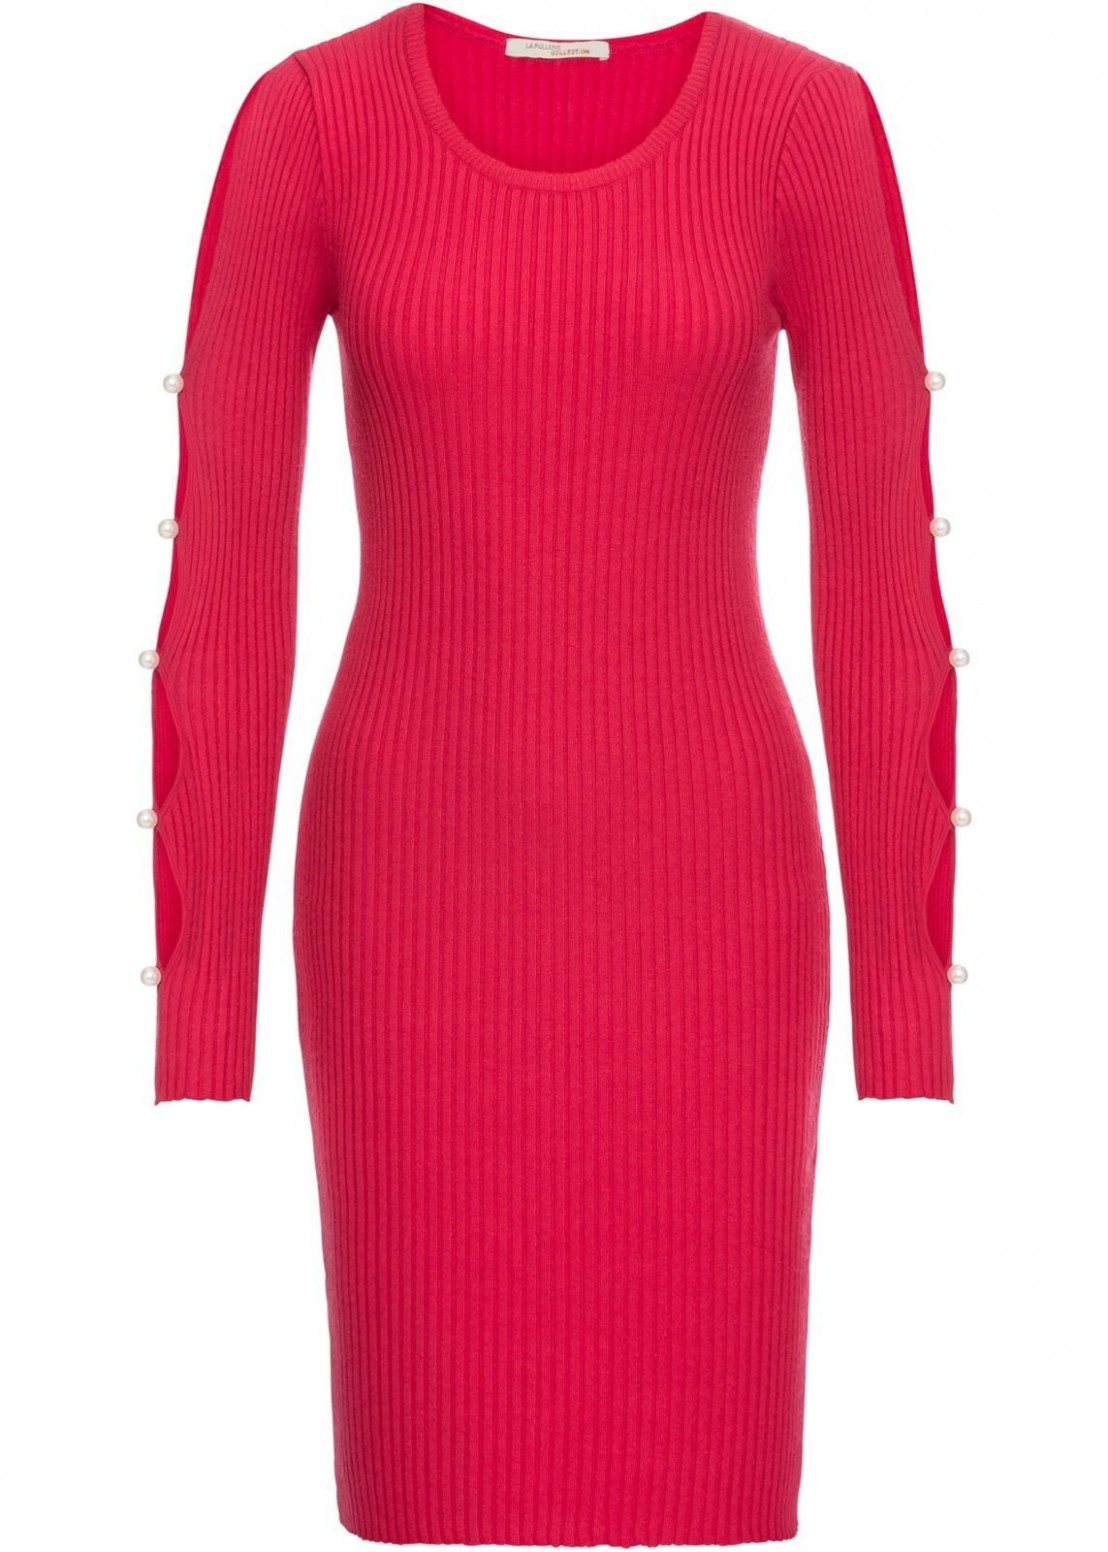 pin on rotes kleid rotes kleid langarm